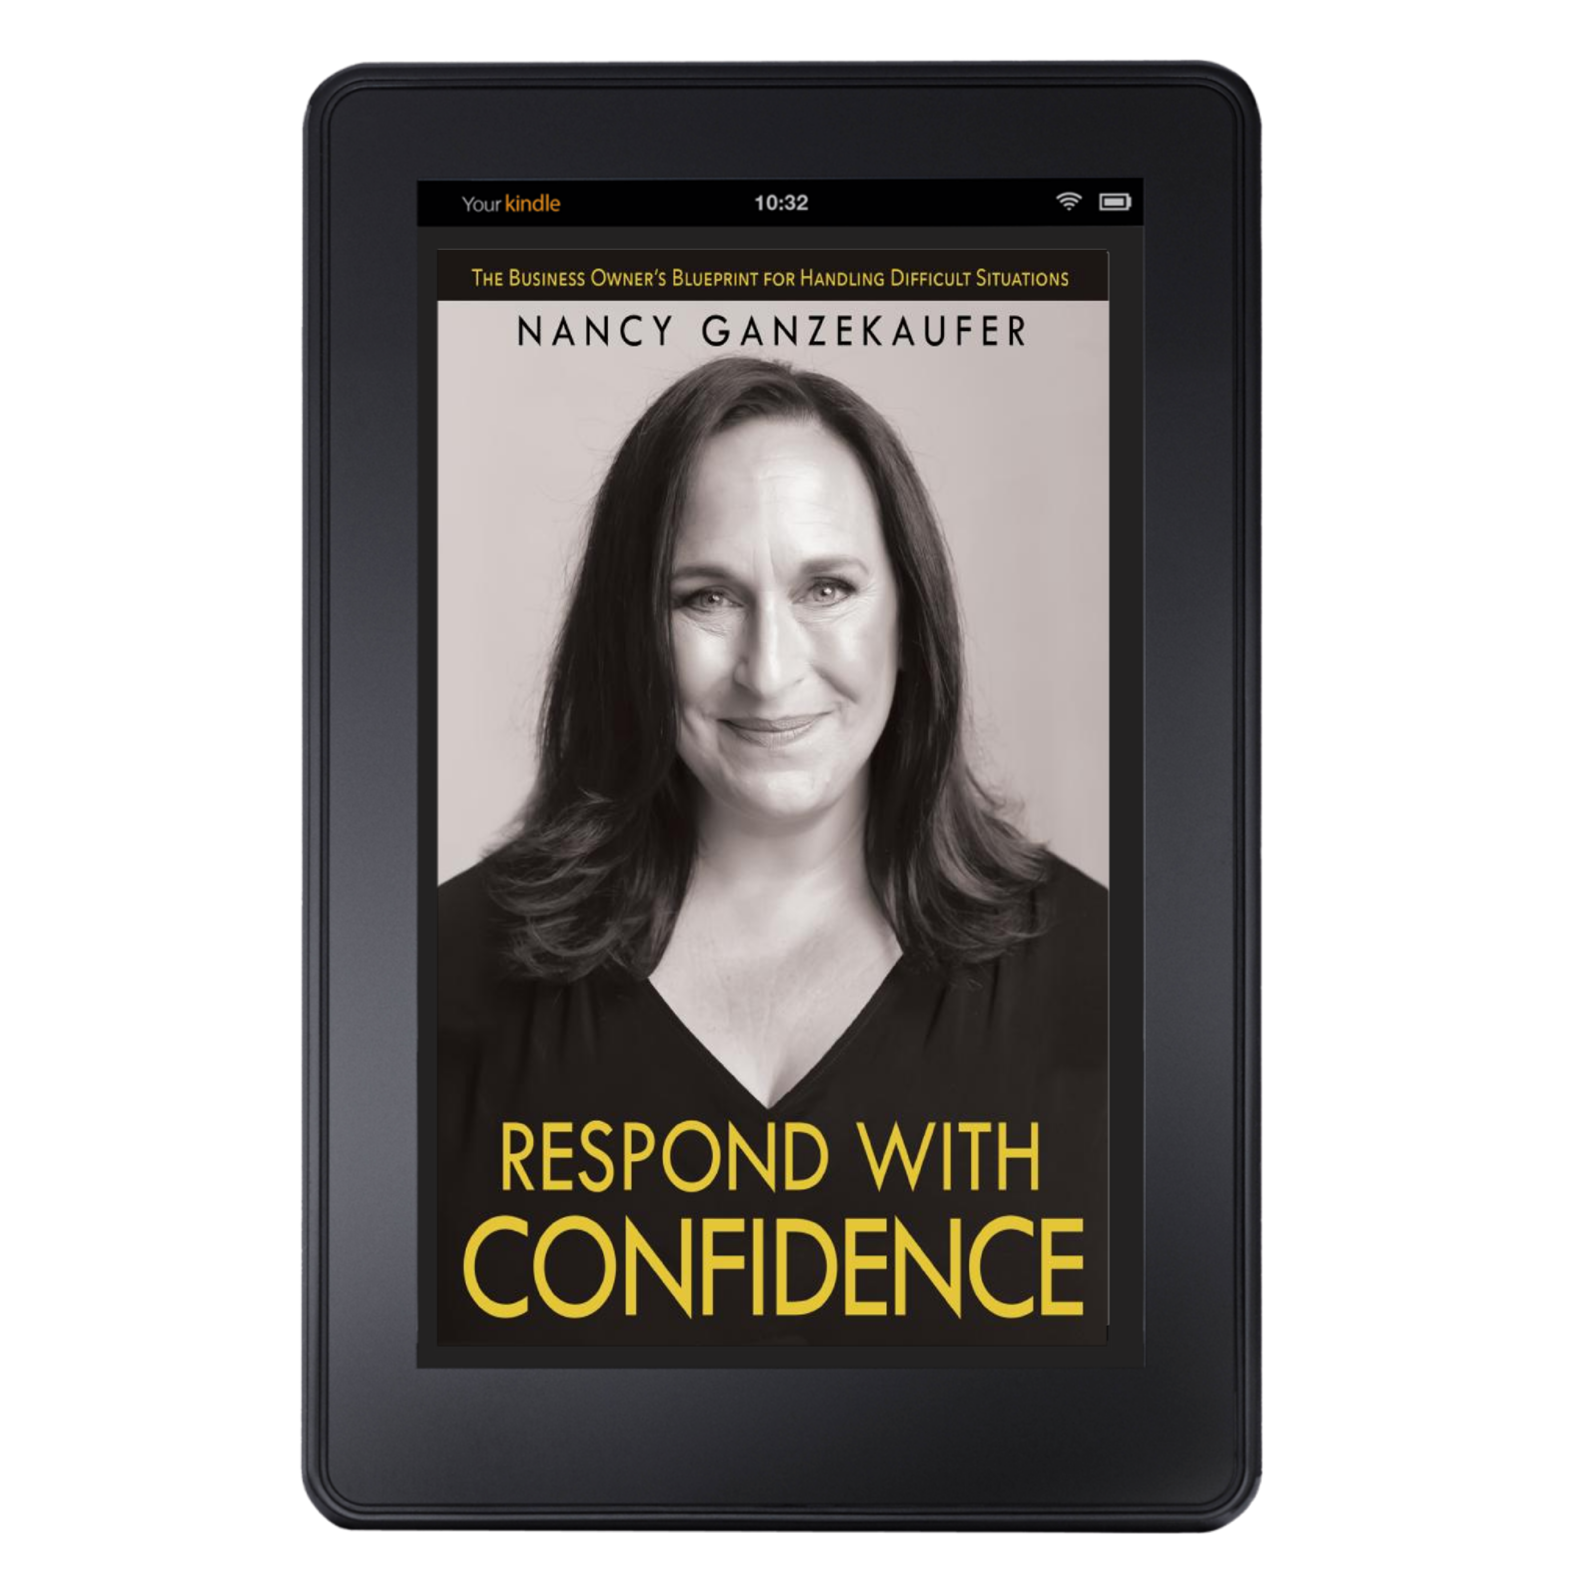 Respond with Confidence by Nancy Ganzekaufer kindle version